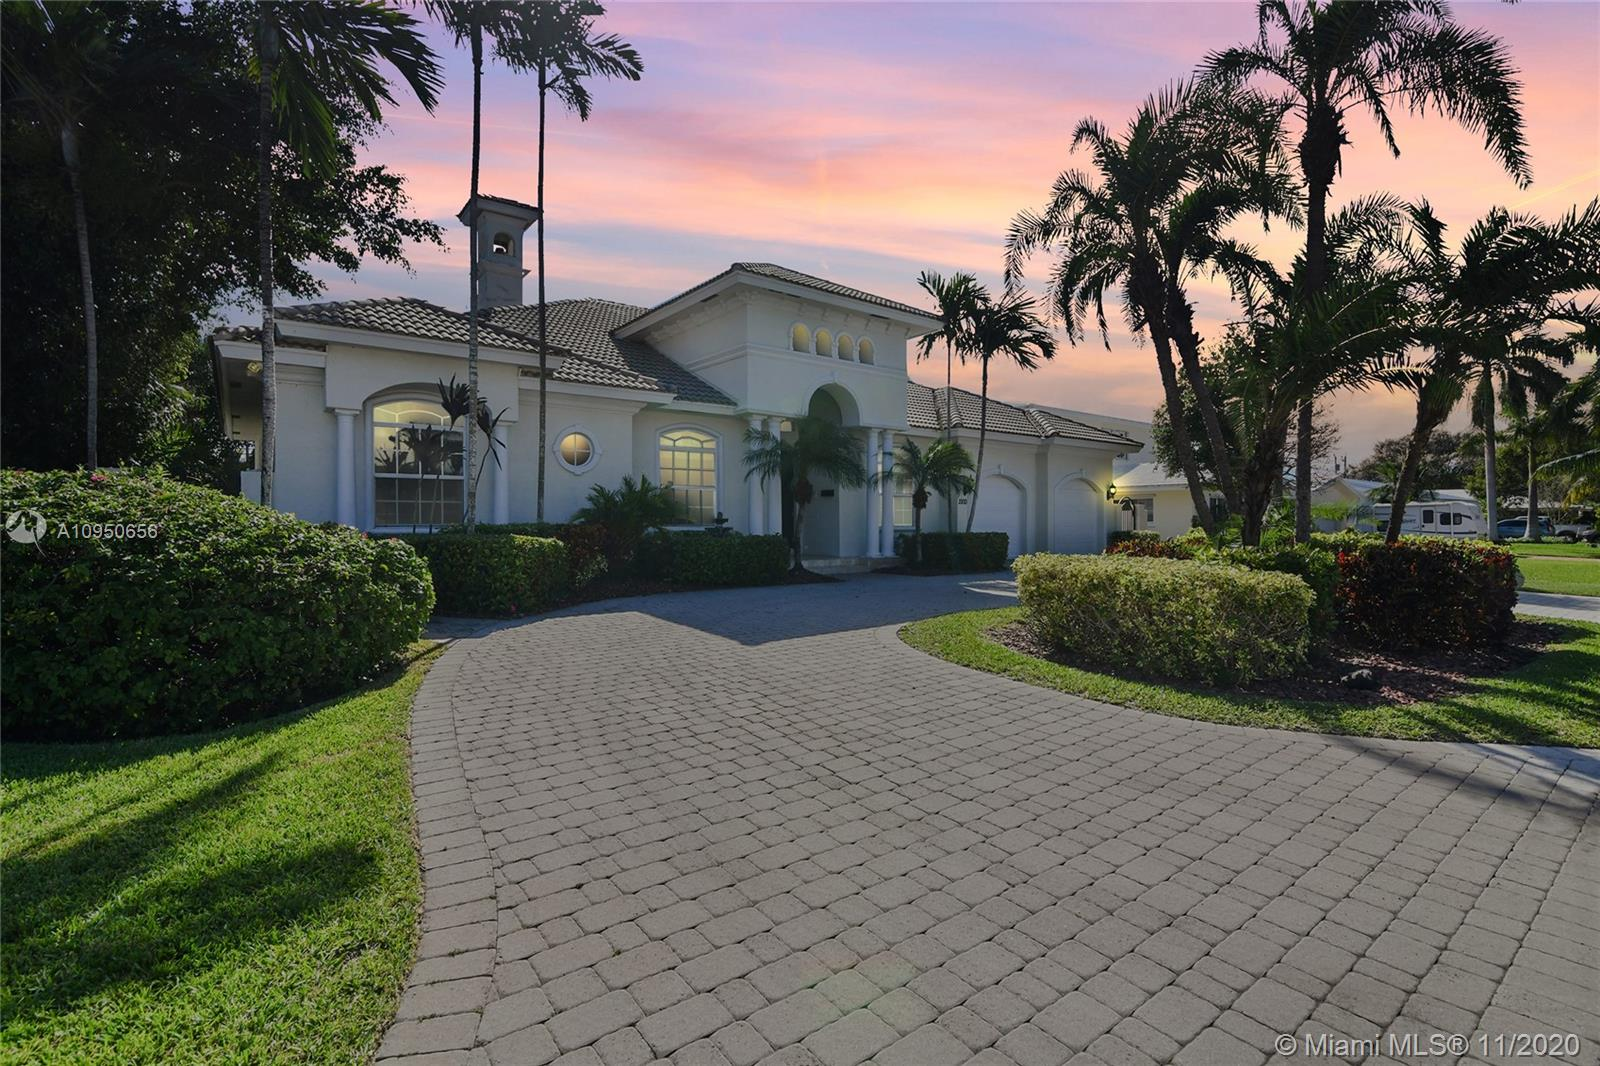 RARE OPPORTUNITY!!! BUILD IN 2003 ONE STORY 4 Bedrooms, 4 Bathroom home in Prestigious Venetian Isles in Lighthouse Point. Triple split floor plan, High/Vaulted ceilings, Stunning archways and finished to a very high level. Spacious living area overlooking thru tall impact glass french doors to a beautifully landscaped pool deck offers a formal living area with wood burning fireplace, formal dining room with wet bar, kitchen opens to family room. Master suite with his/hers closet. This elegant home boasts many custom features: Tall interior doors, 2 zones new AC, New appliances, Heated pool/spa, cabana bath, Outdoor shower, Two car garage, Surround sound, Hypo-allergenic AC filtration, Central vac system. Next to LHP Yacht Club. Wide private street with no traffic.